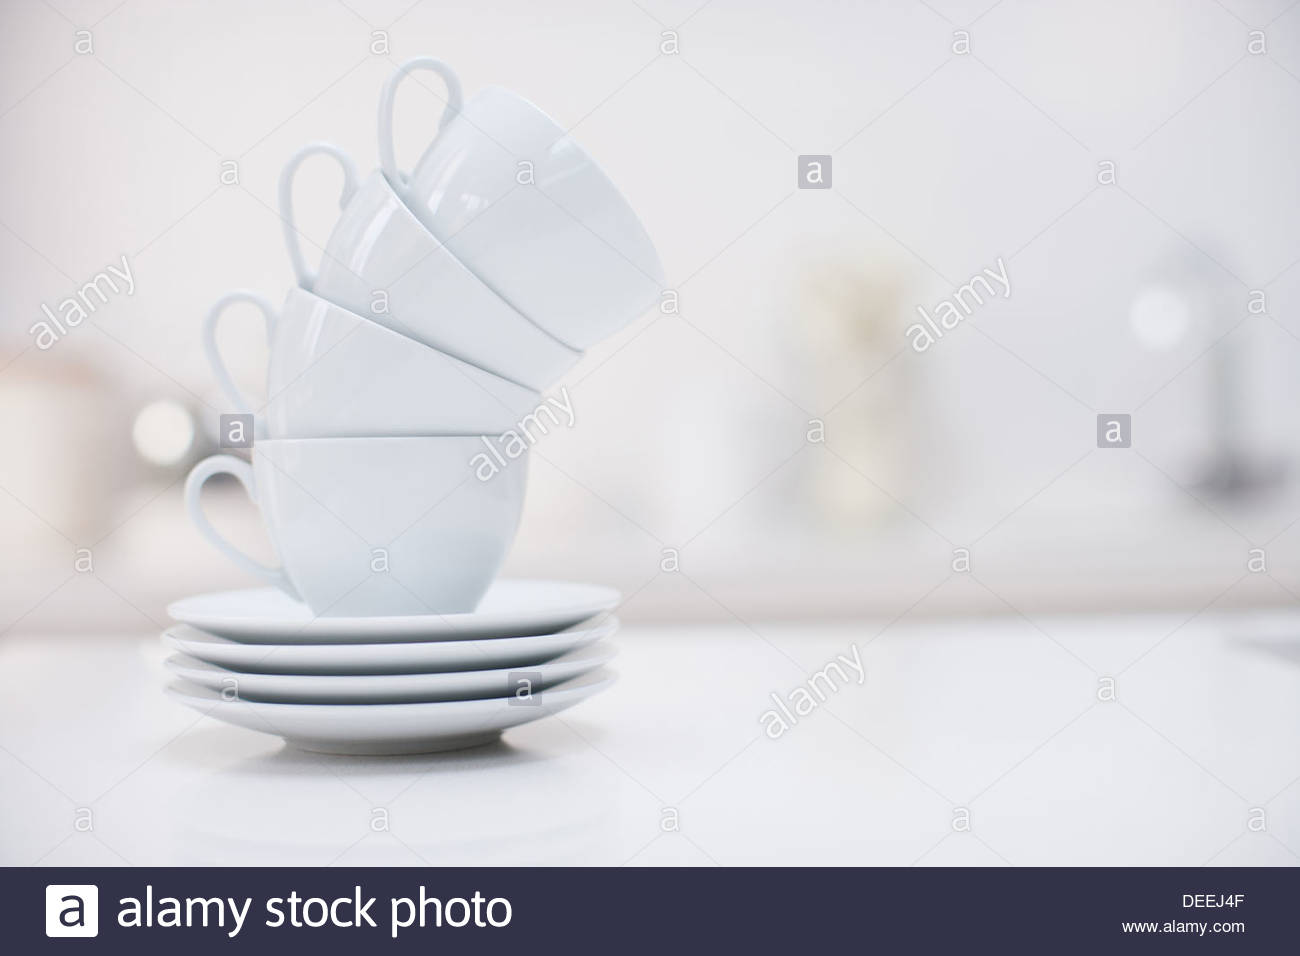 Stack of coffee cups - Stock Image